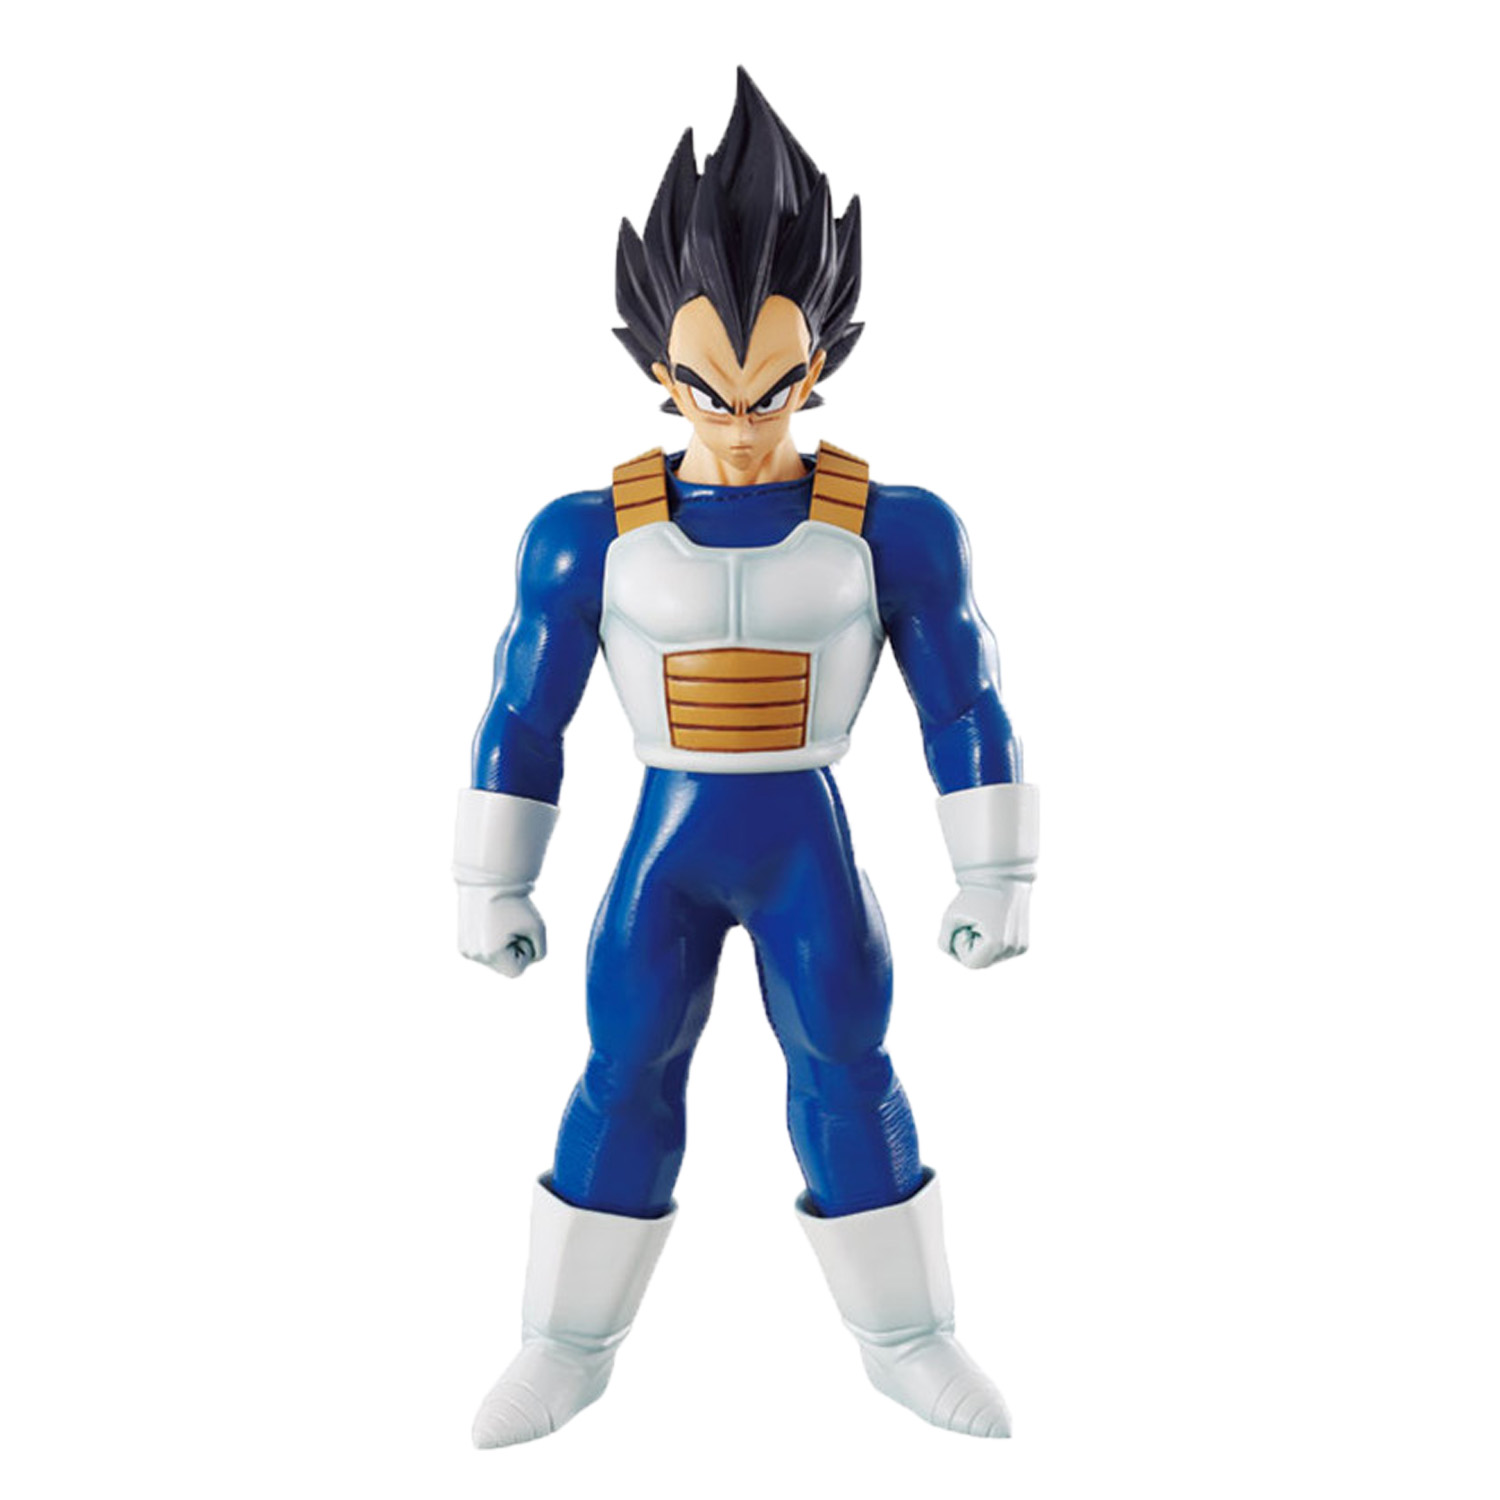 Chanycore Anime Dragon Ball Z BIG DOD Commoner Super Saiyan VEGETA Final form Action Figures PVC Limit ForCollectible Toy free shipping dragon ball z super big super saiyan vegito vegeta pvc action figure model toy 36cm dbfg045